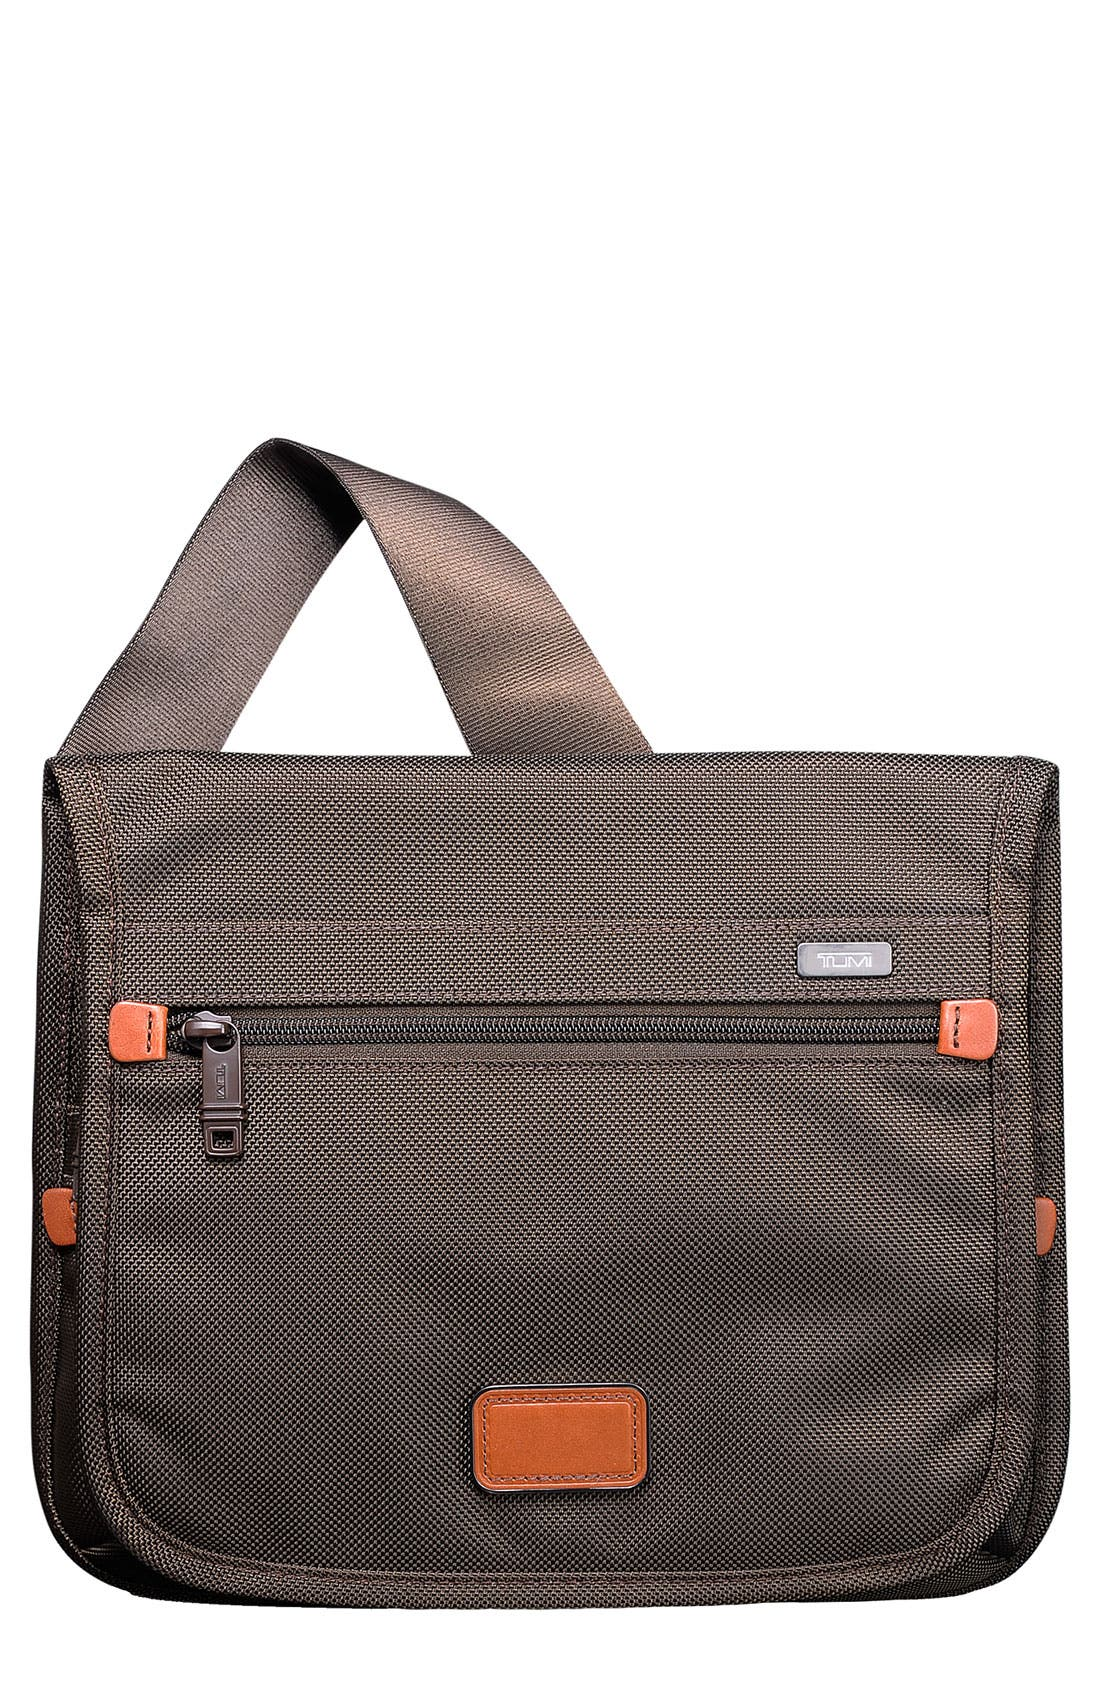 Main Image - Tumi 'Small Alpha' Flap Crossbody Bag